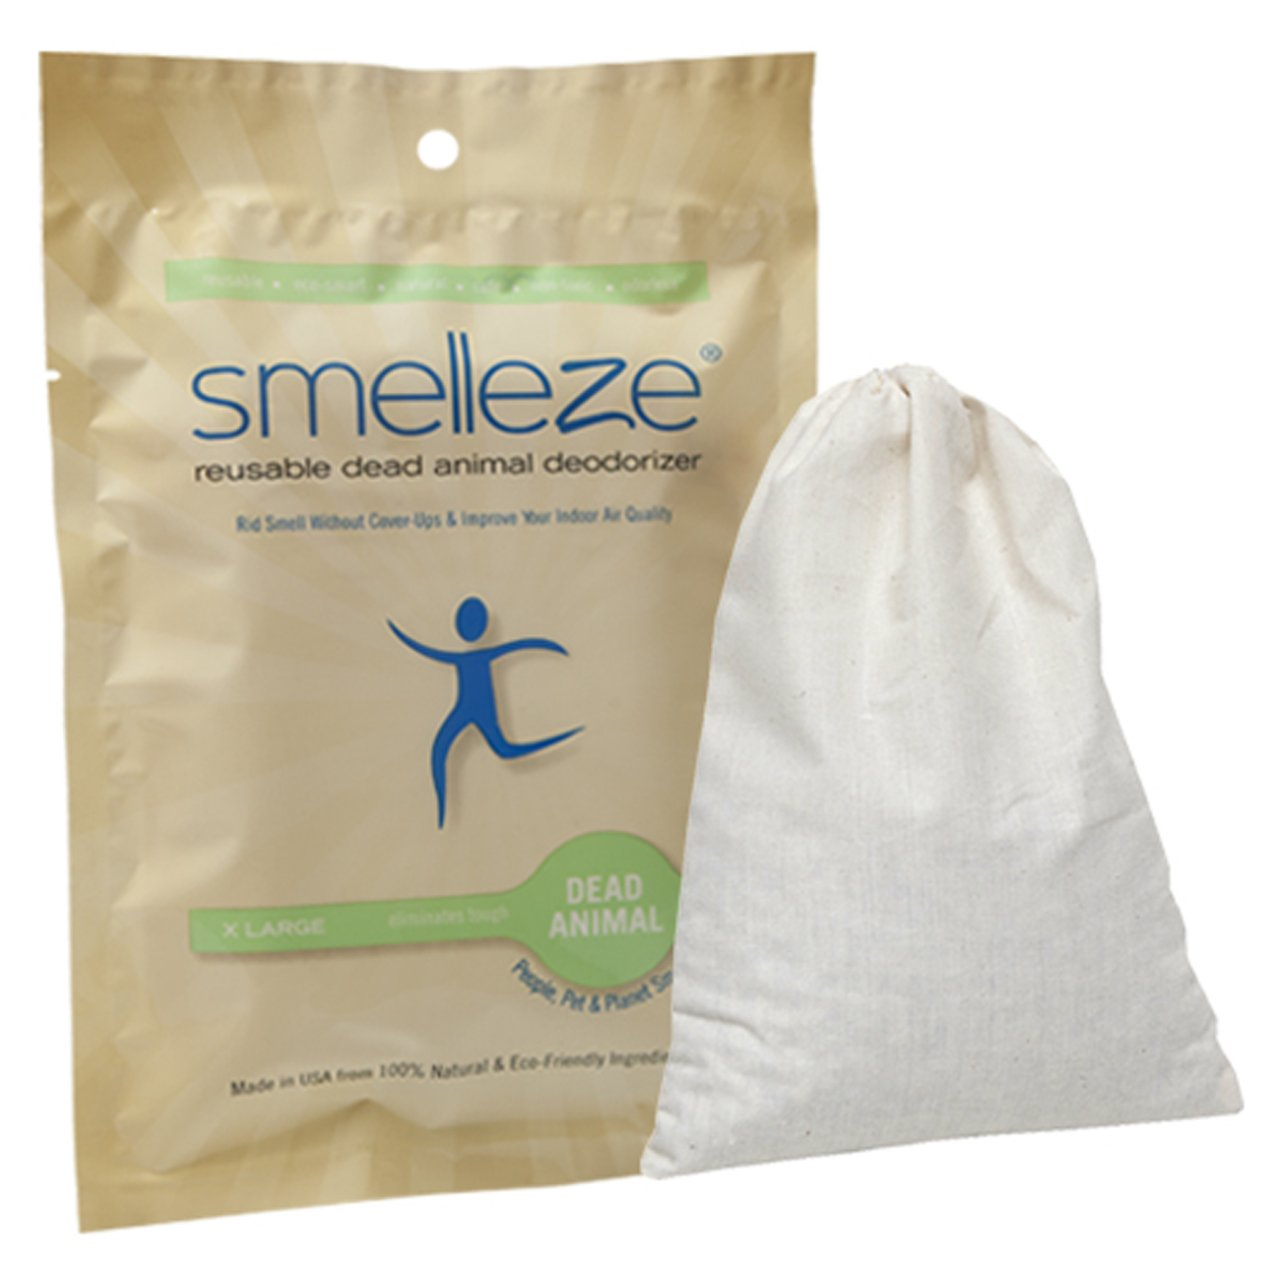 Amazon.com: SMELLEZE Reusable Basement Odor Removal